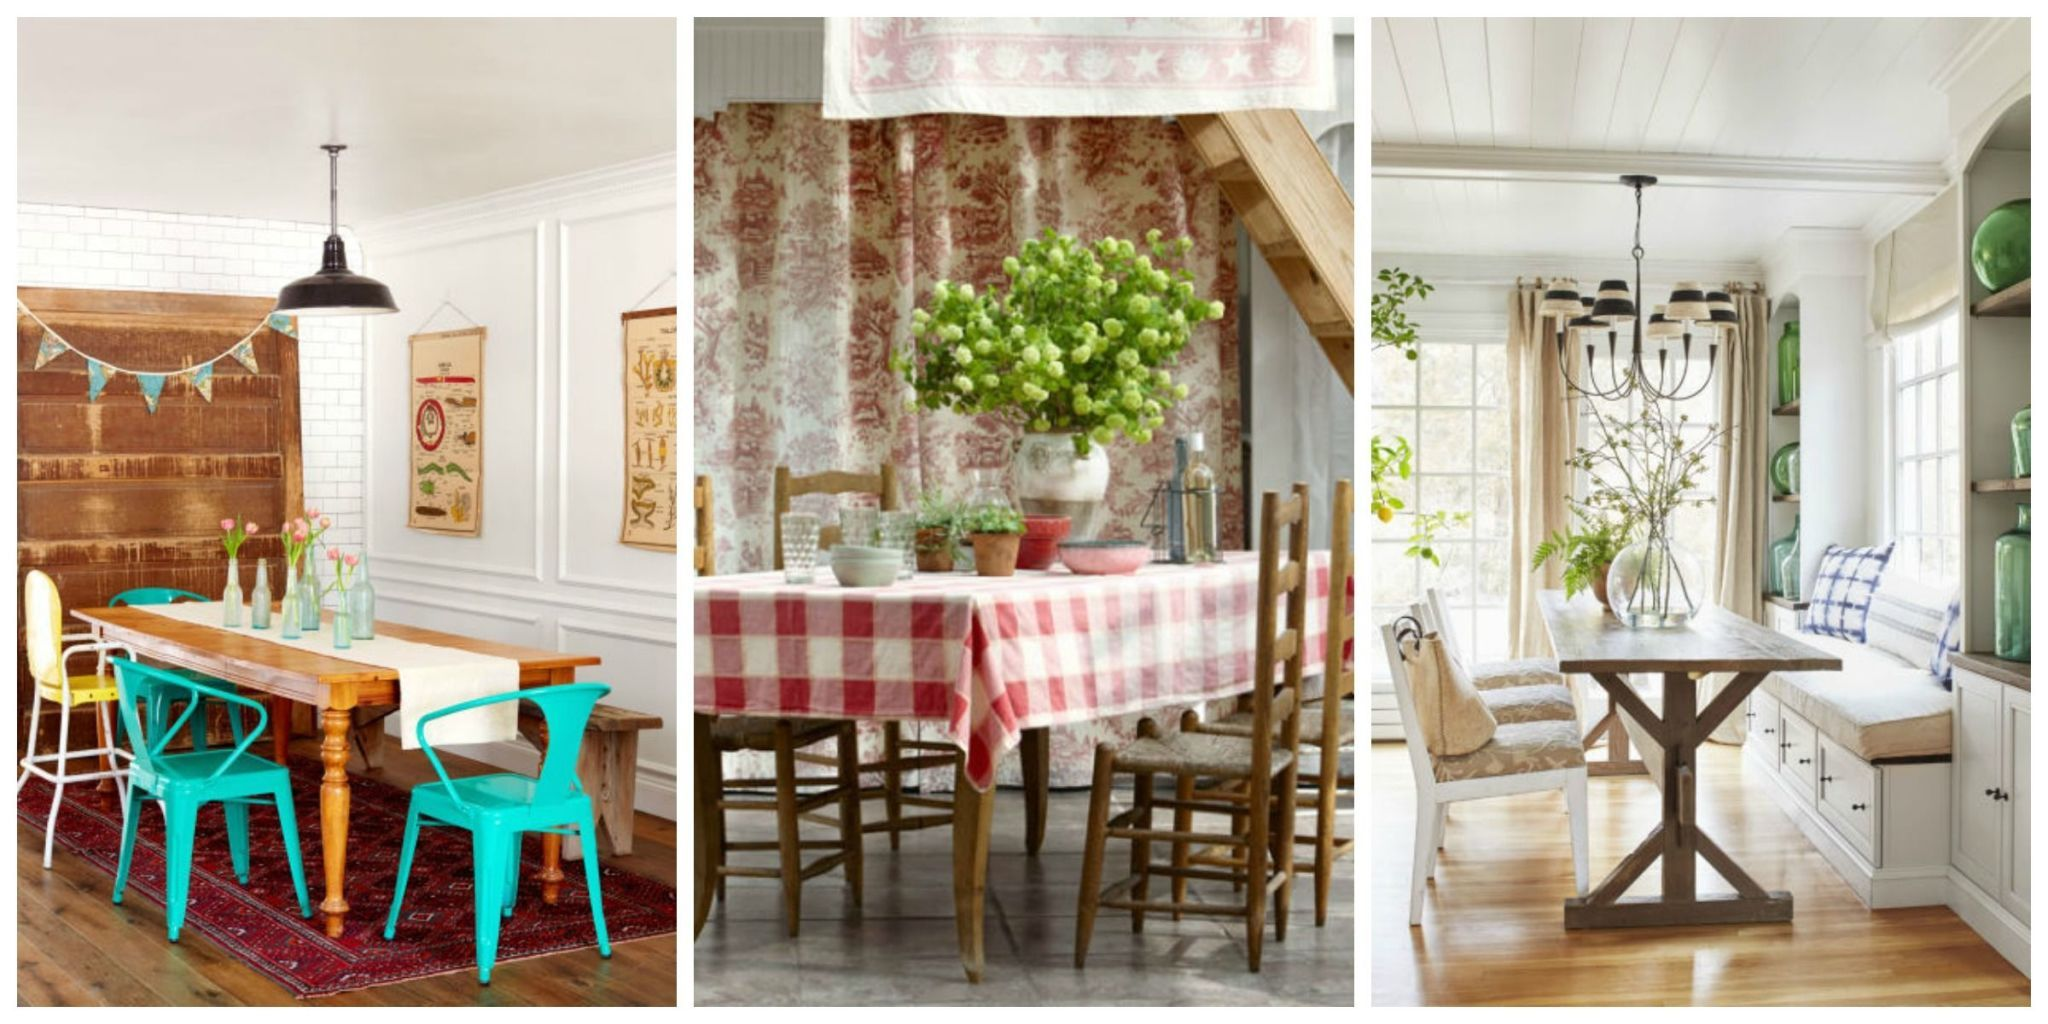 Superbe Our Favorite Ways To Transform Your Dining Room. By Country Living Staff